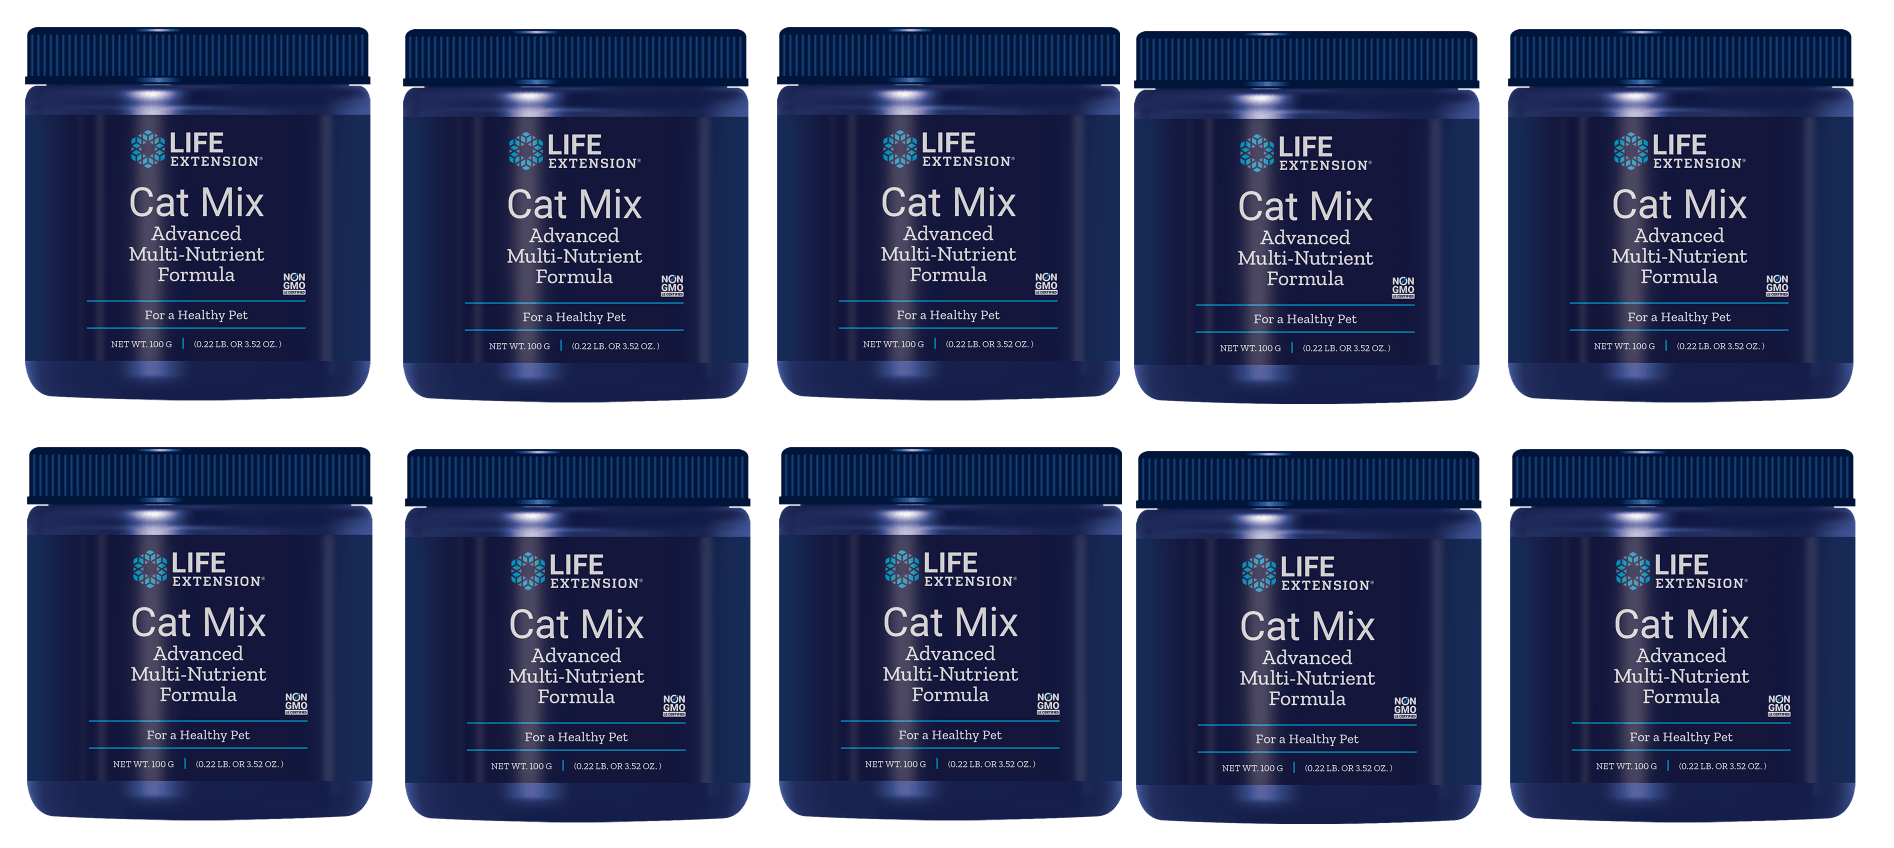 Life Extension Cat Mix, 100 Grams Powder, 10-pack